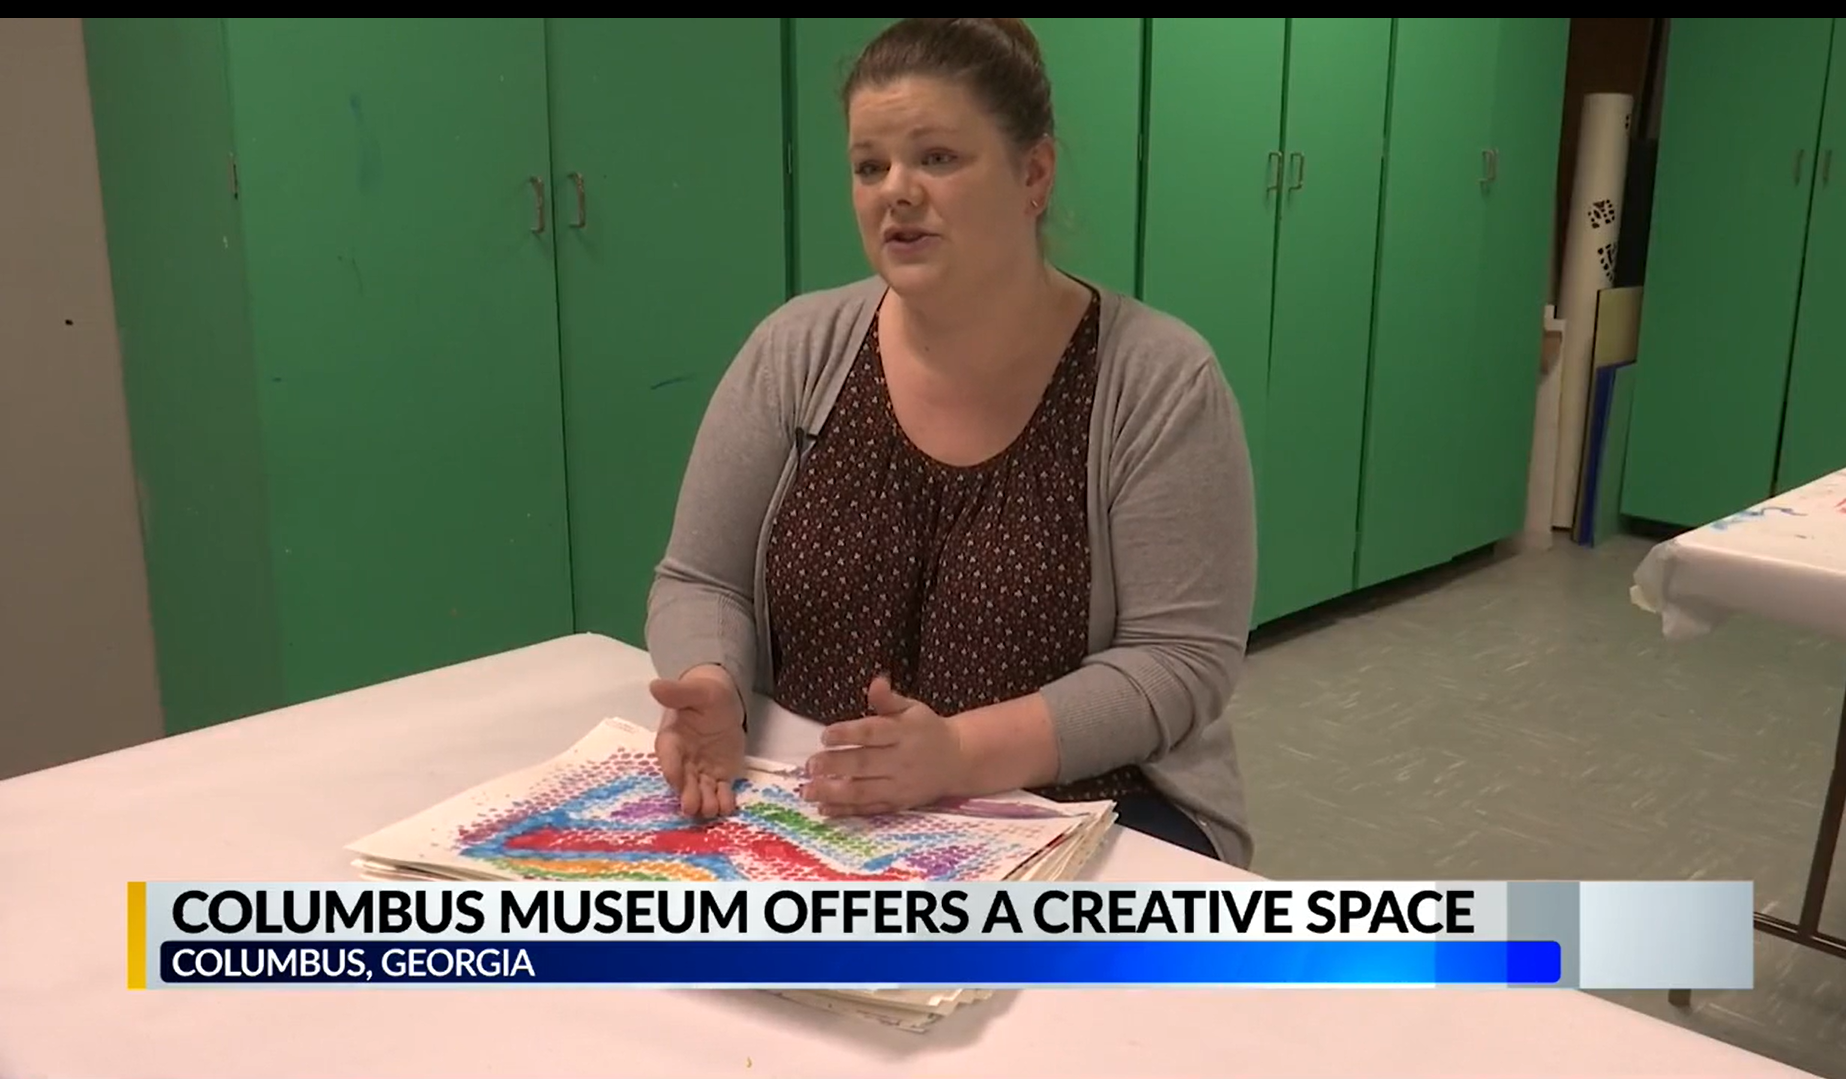 The Columbus Museum is partnering with low income neighborhoods to provide free art lessons to kids